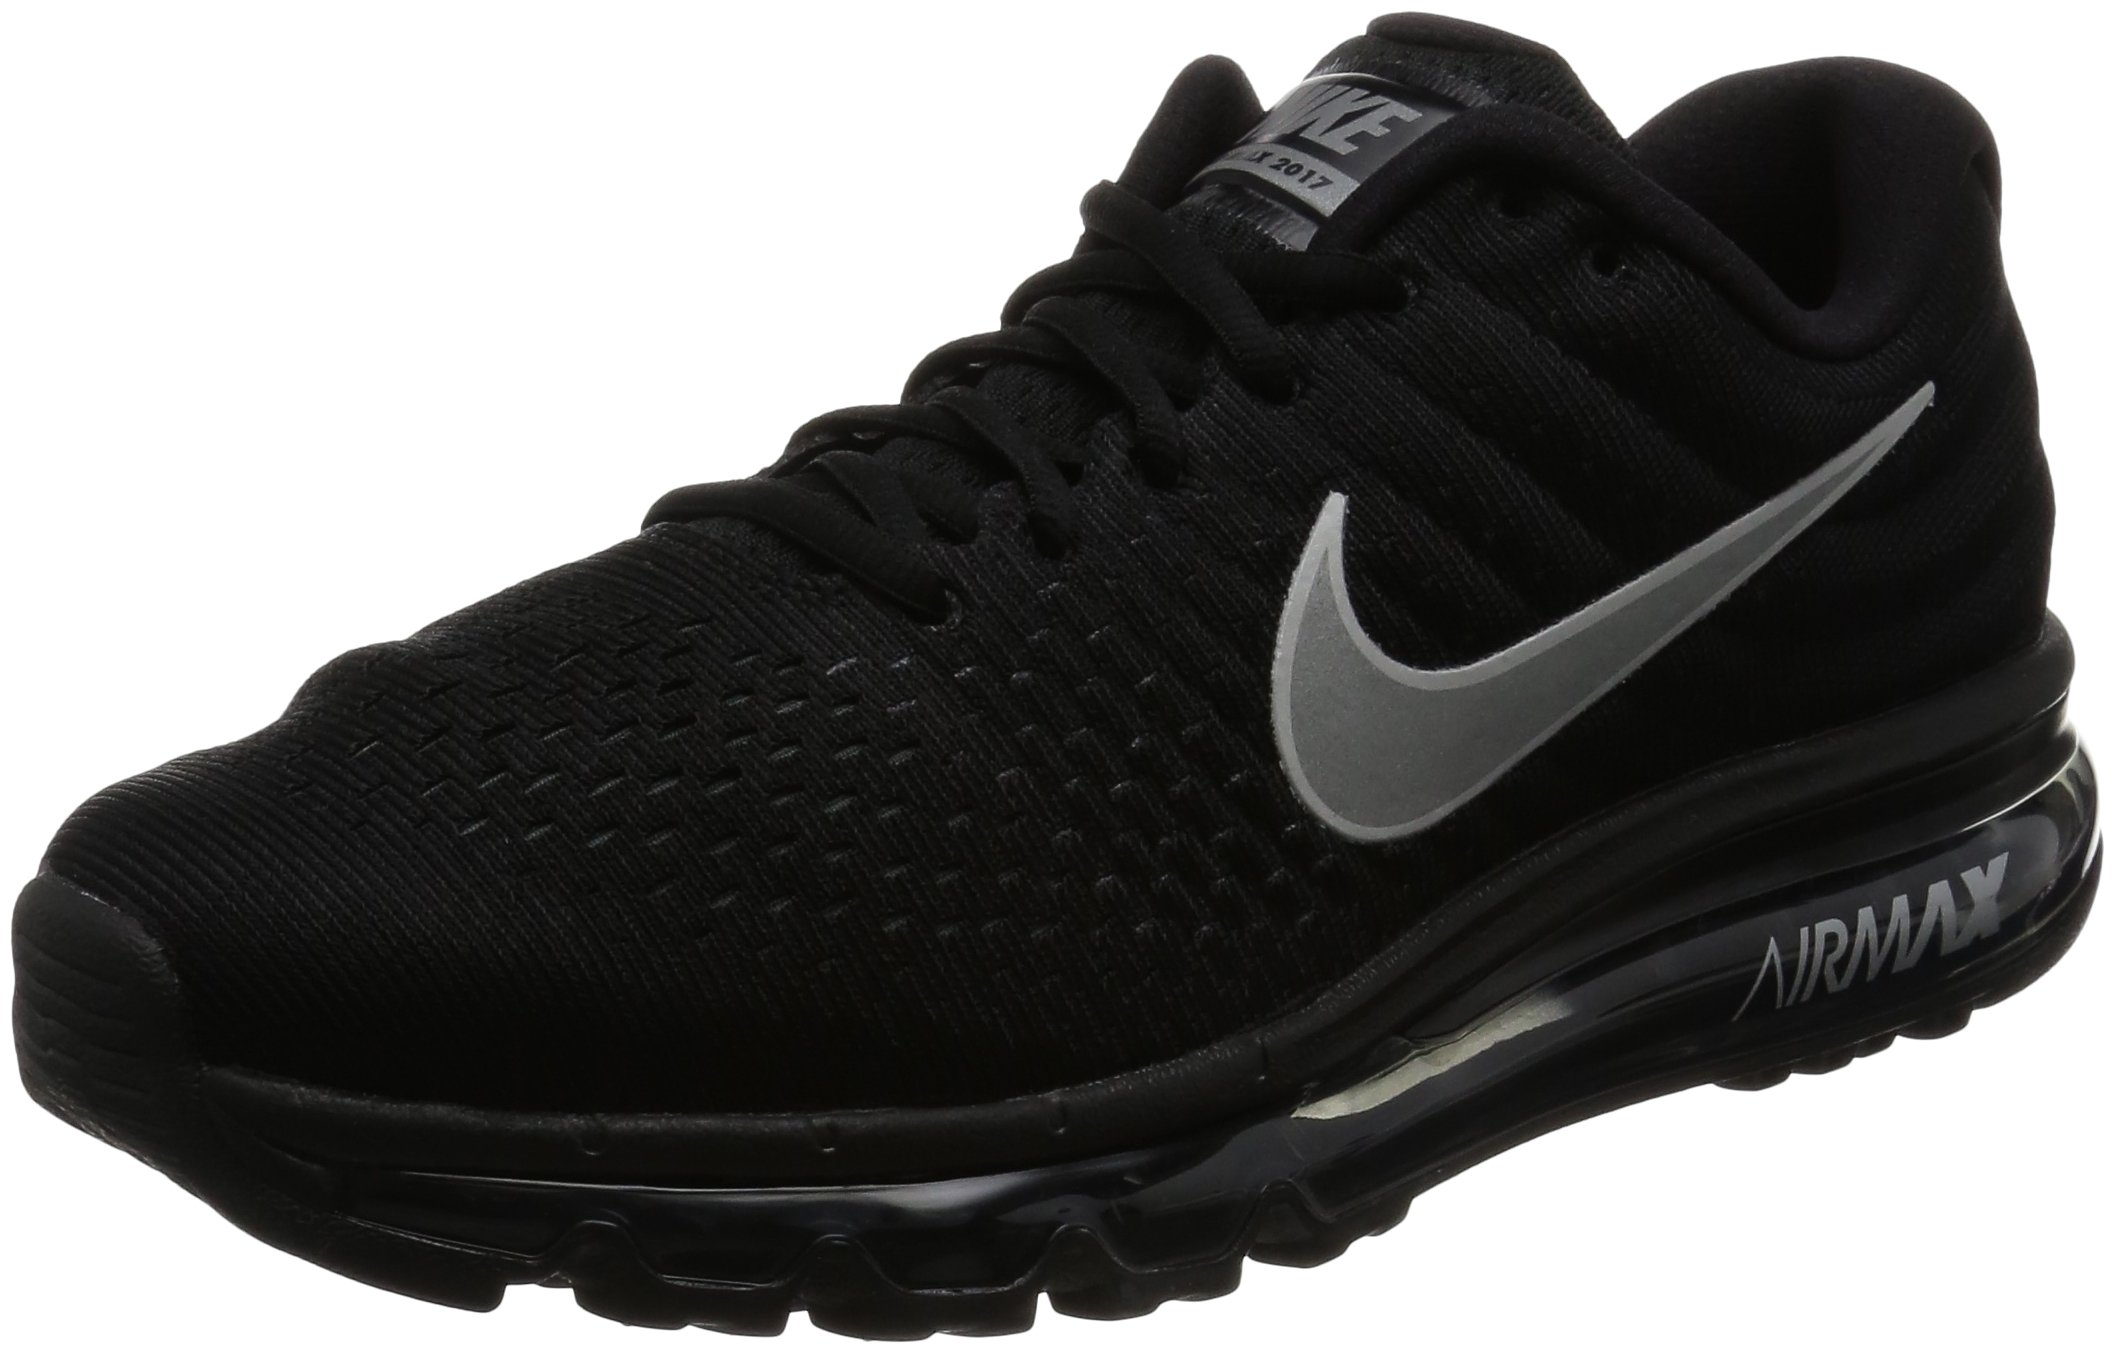 half off 637a9 f66de Galleon - Nike Mens Air Max 2017 Running Shoes Black White Anthracite  849559-001 Size 8.5